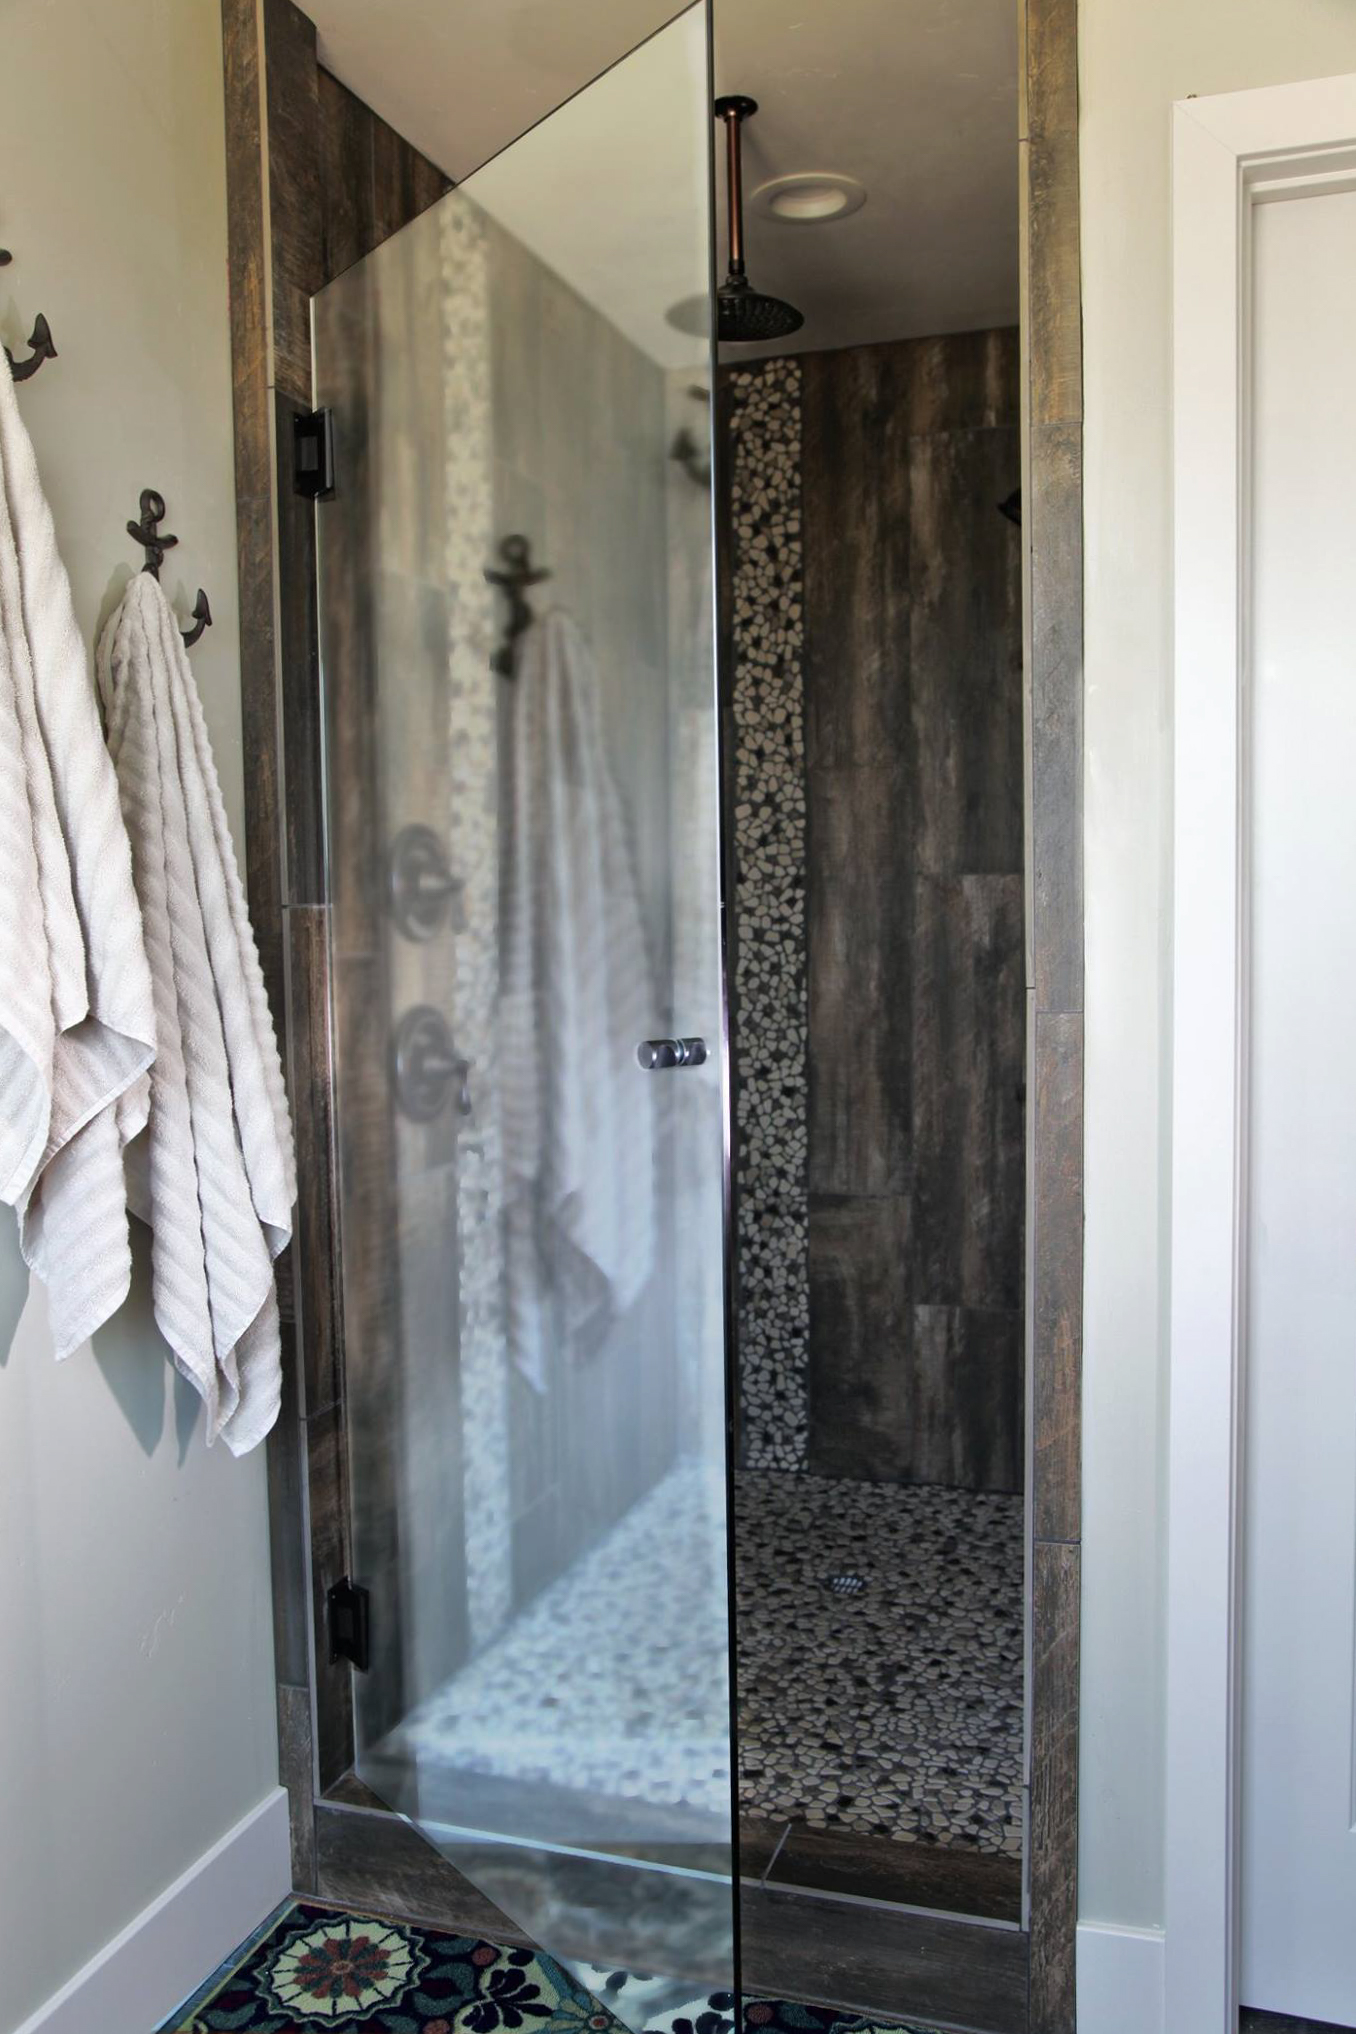 at advantage glass we can provide standard or custom shower enclosures tub enclosures and mirrors for your bathroom